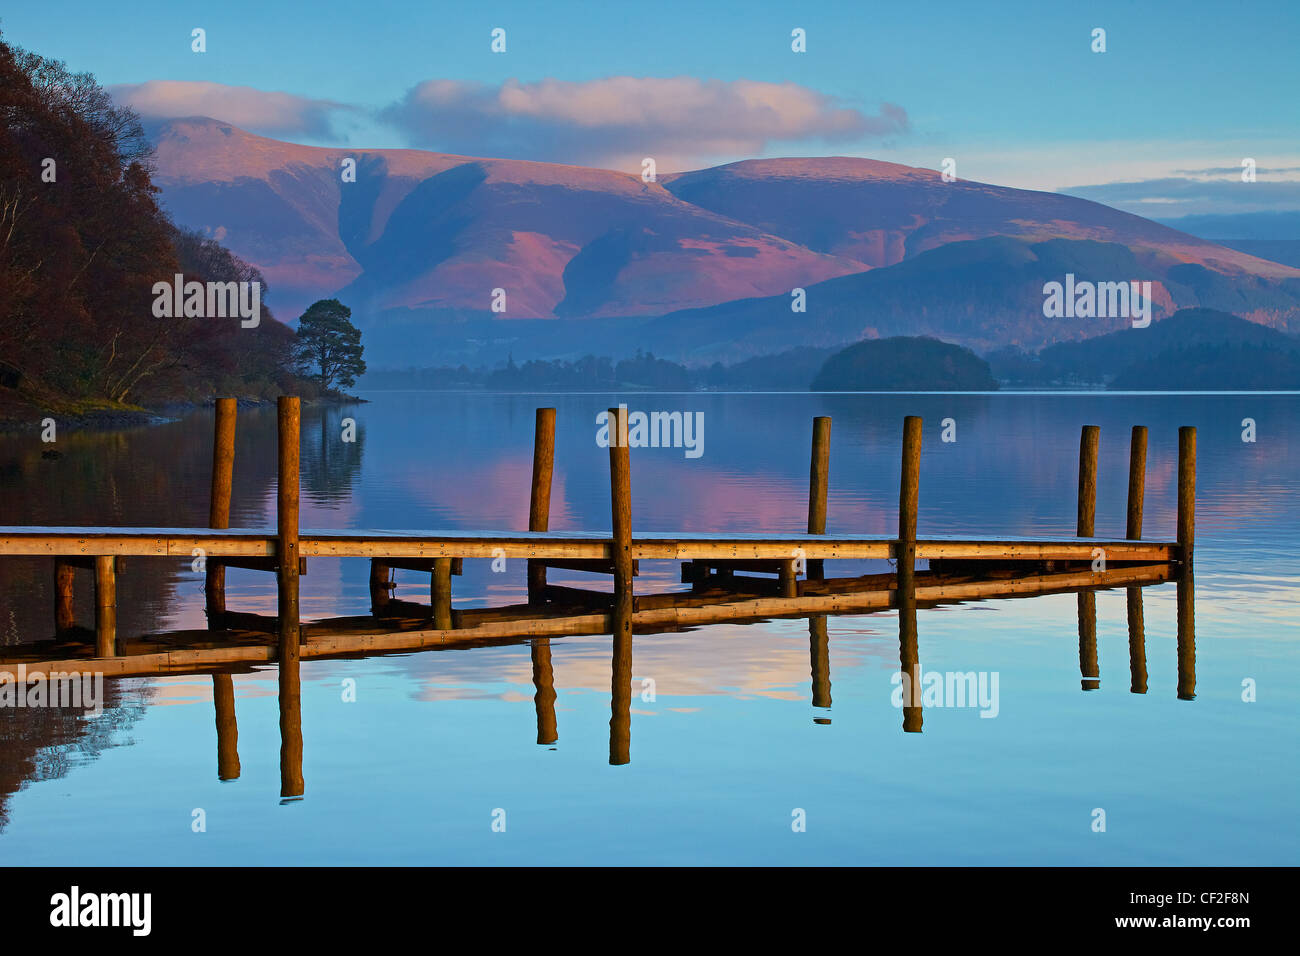 Brandelhow Jetty reflected in the still water of Derwentwater in the Lake District National Park. - Stock Image